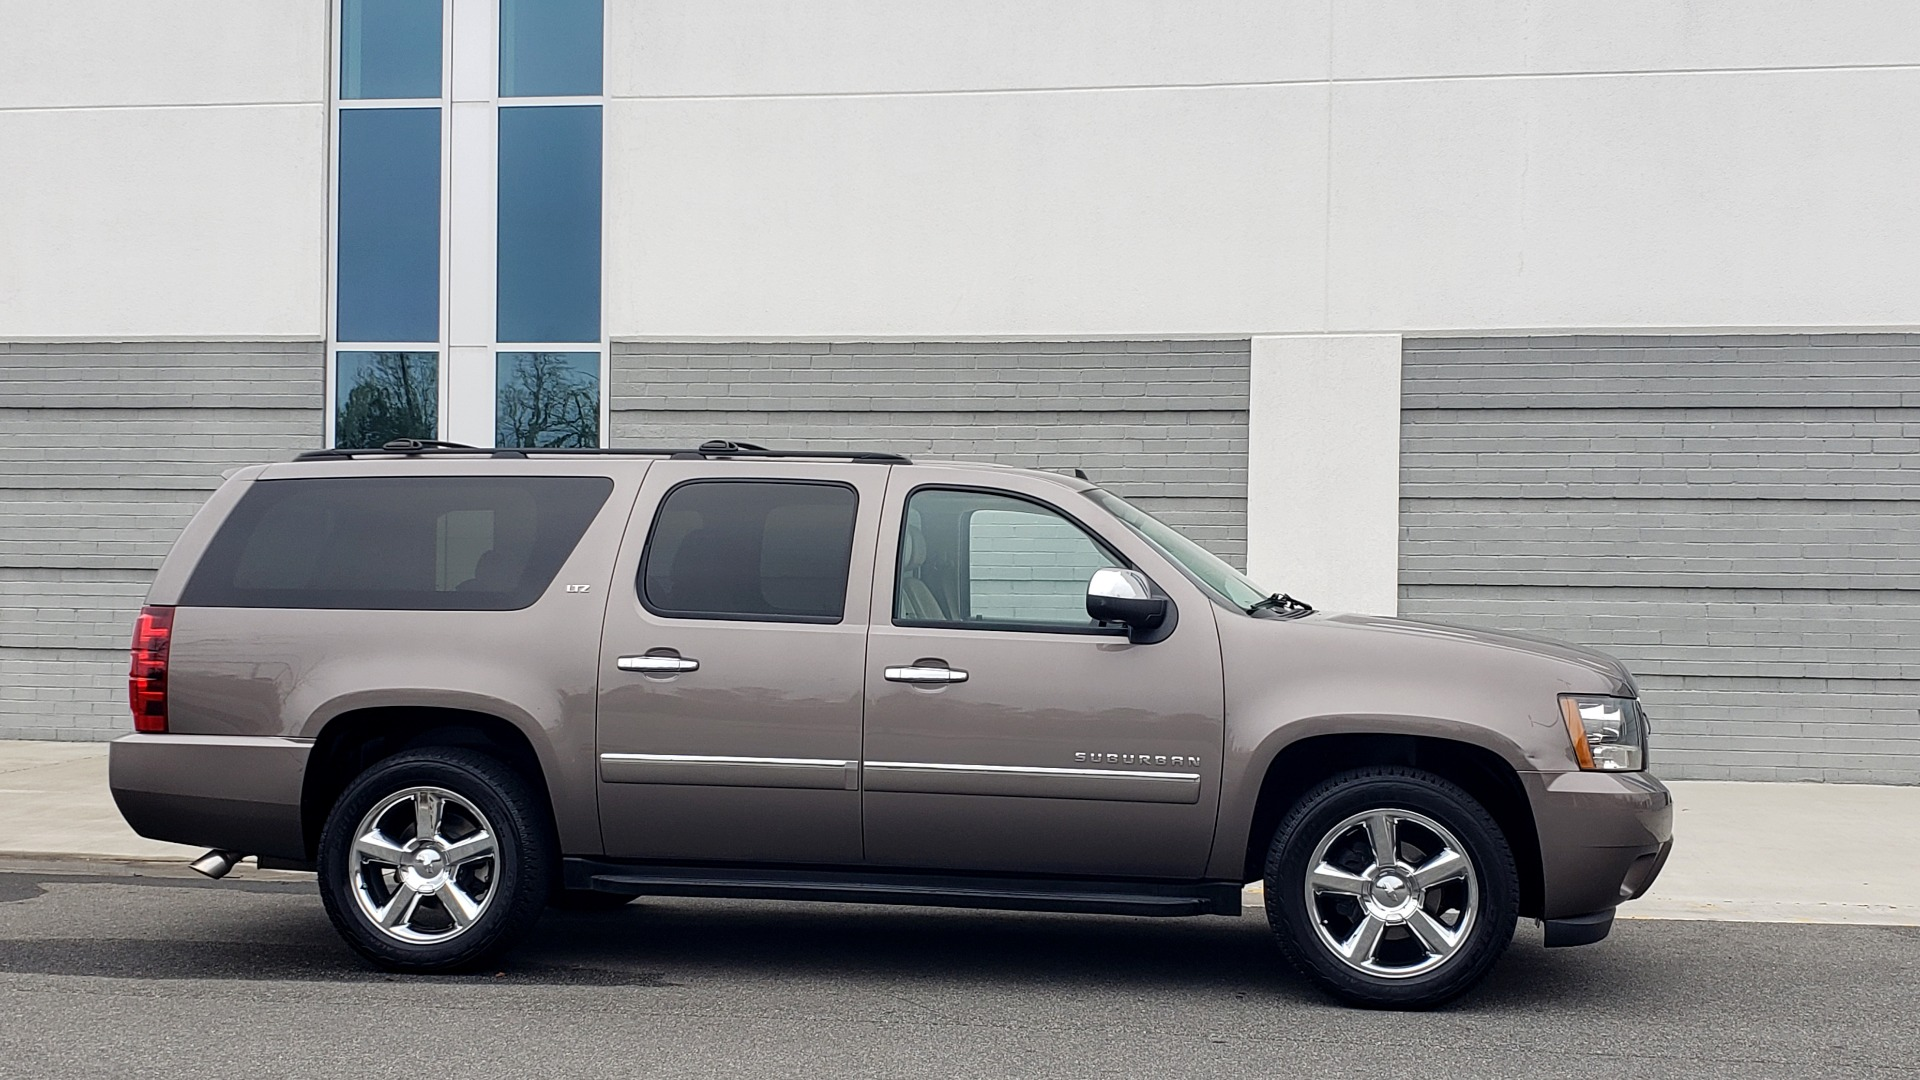 Used 2014 Chevrolet SUBURBAN LTZ / 4WD / ENTERTAINMENT / NAV / SUNROOF / TRAILER PKG for sale Sold at Formula Imports in Charlotte NC 28227 6